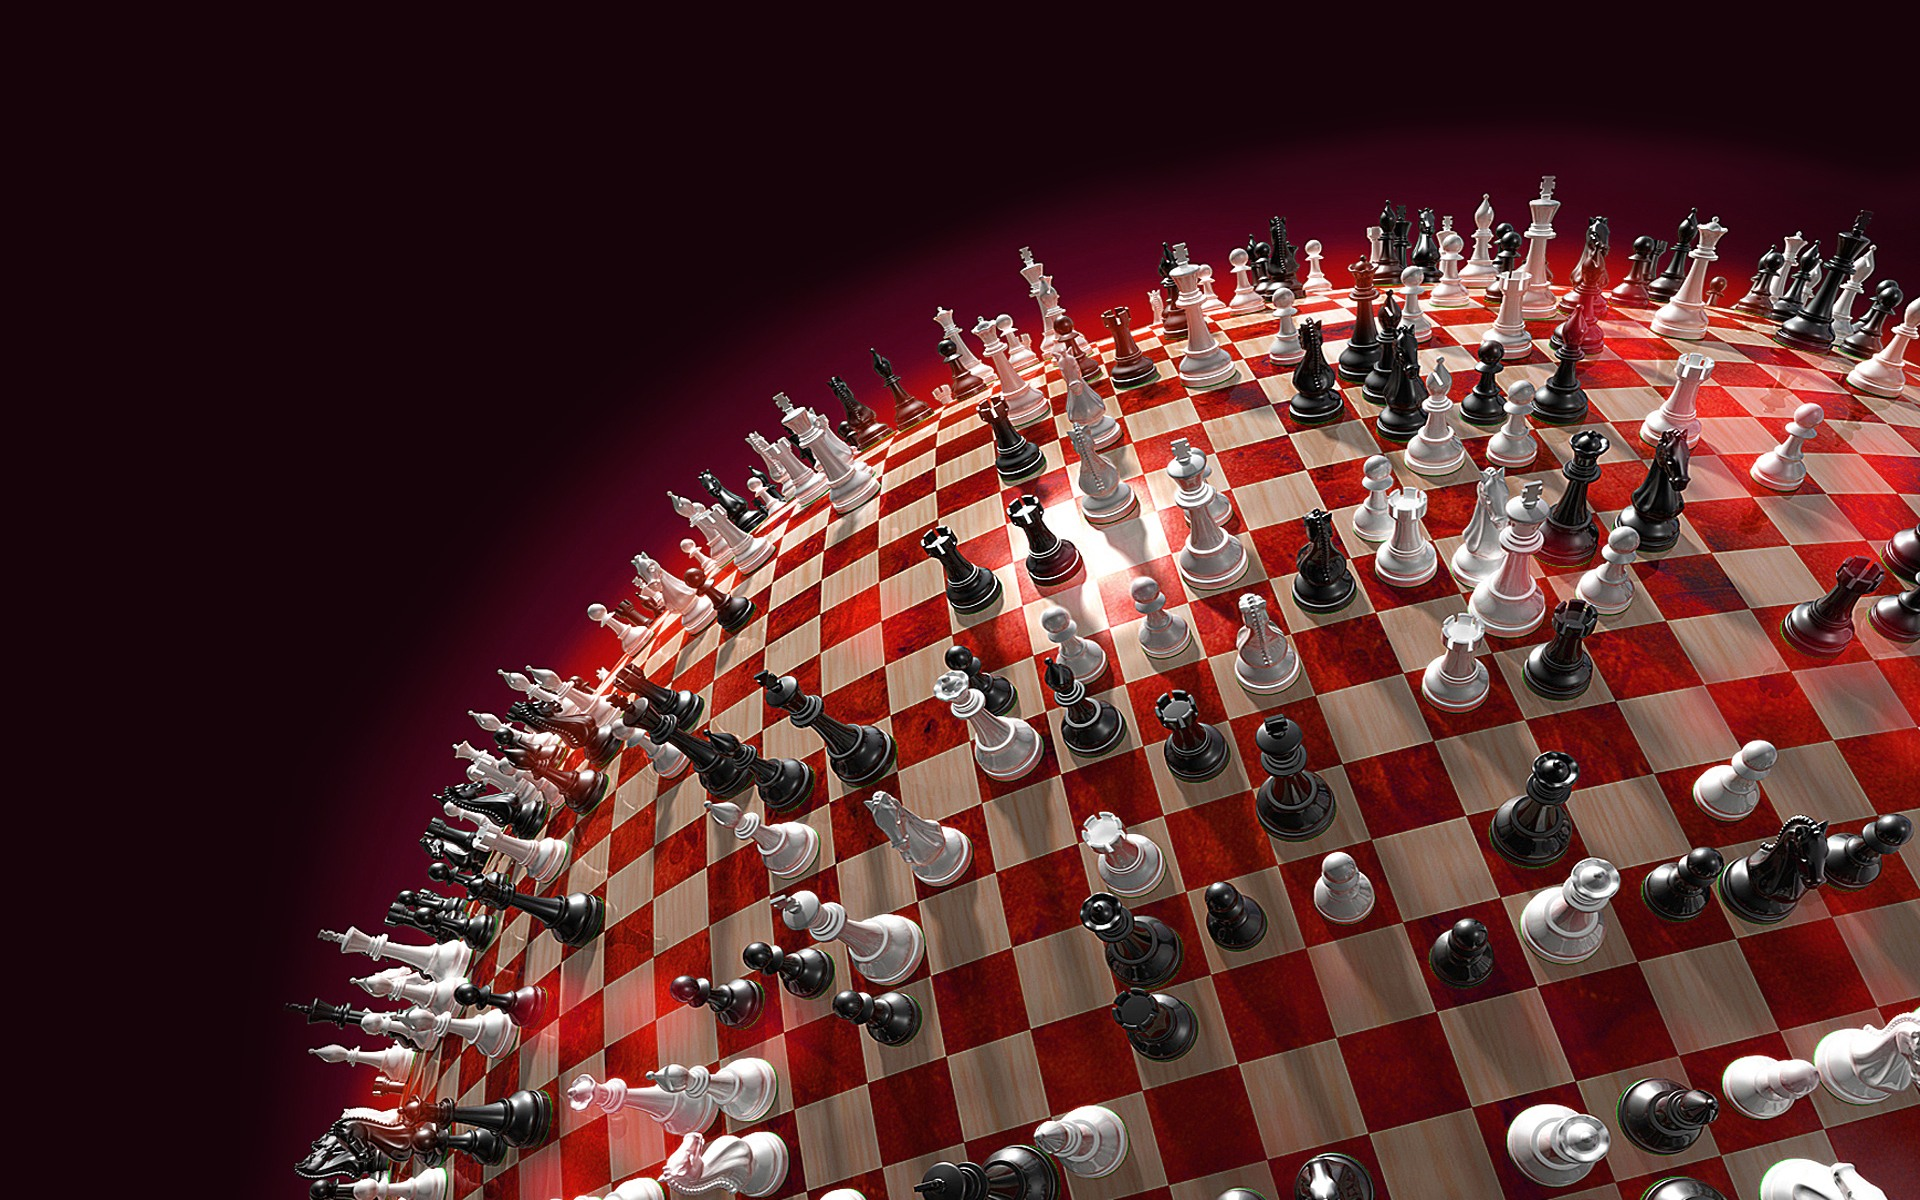 Free download chess wallpaper original 1920x1200 [1920x1200] for